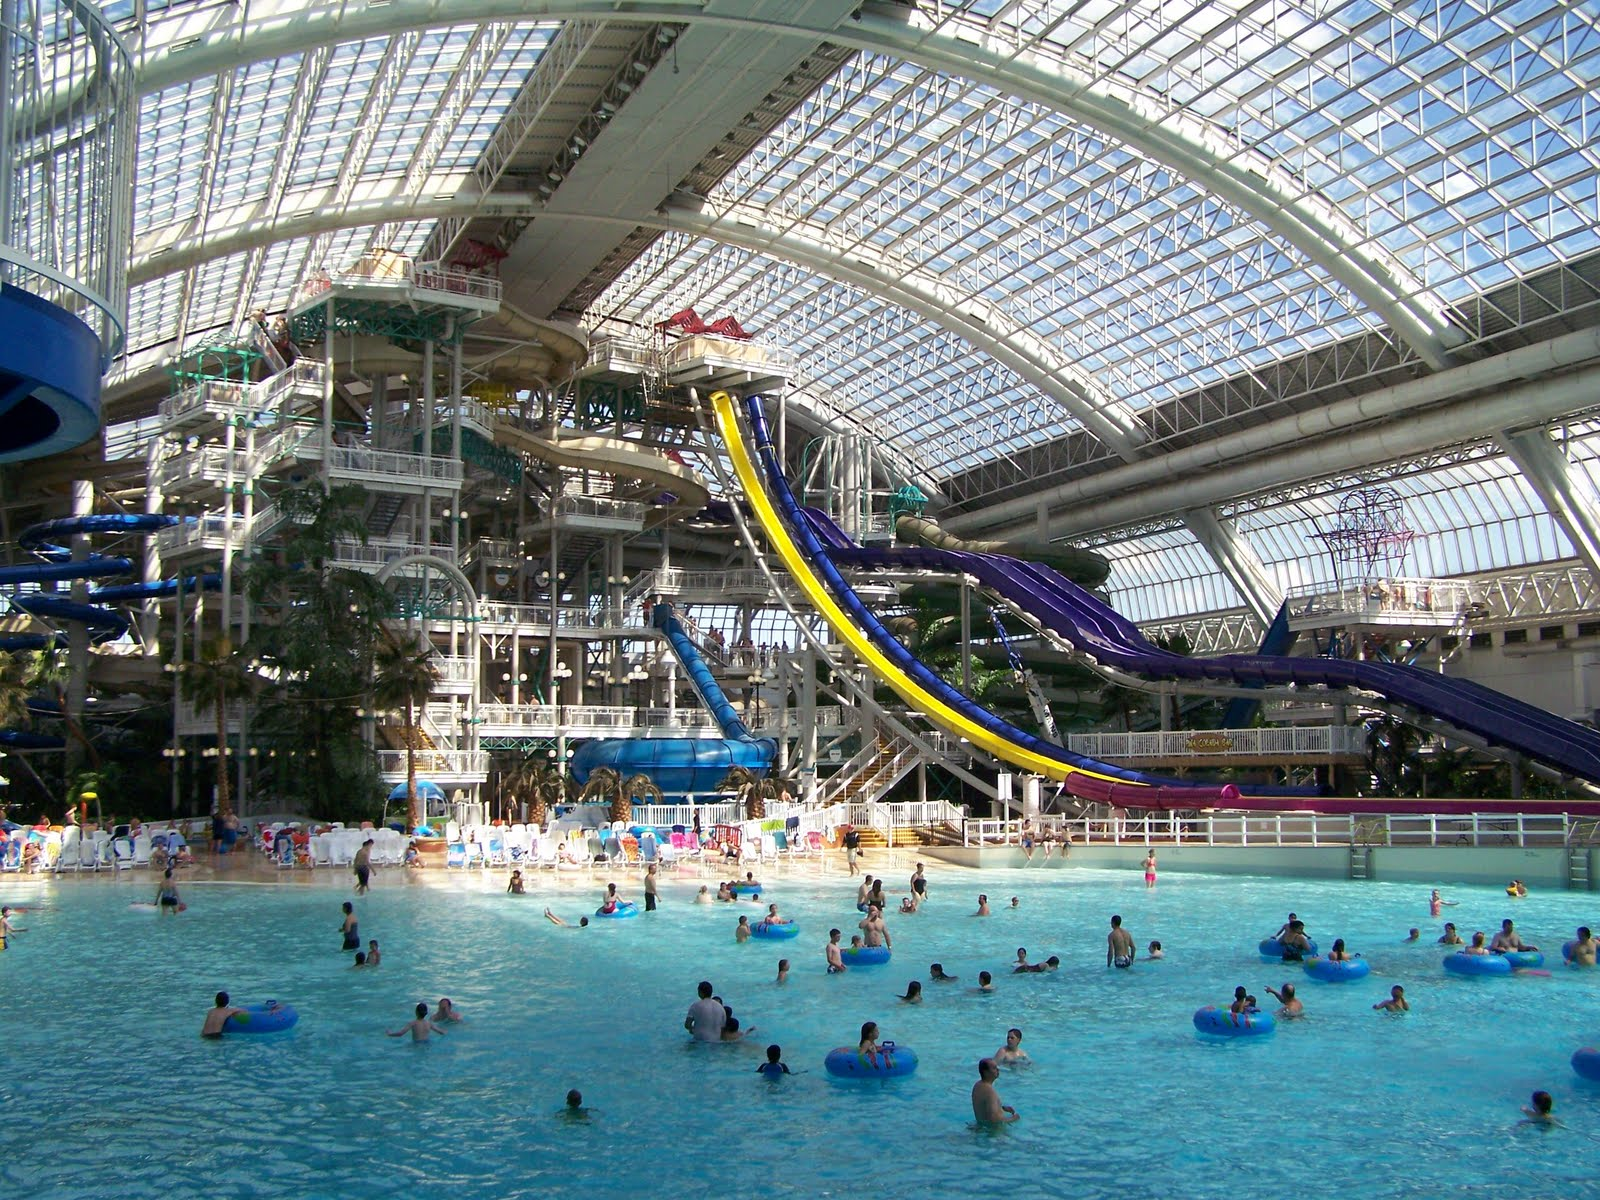 The Travelling Quigleys West Edmonton Mall Water Park